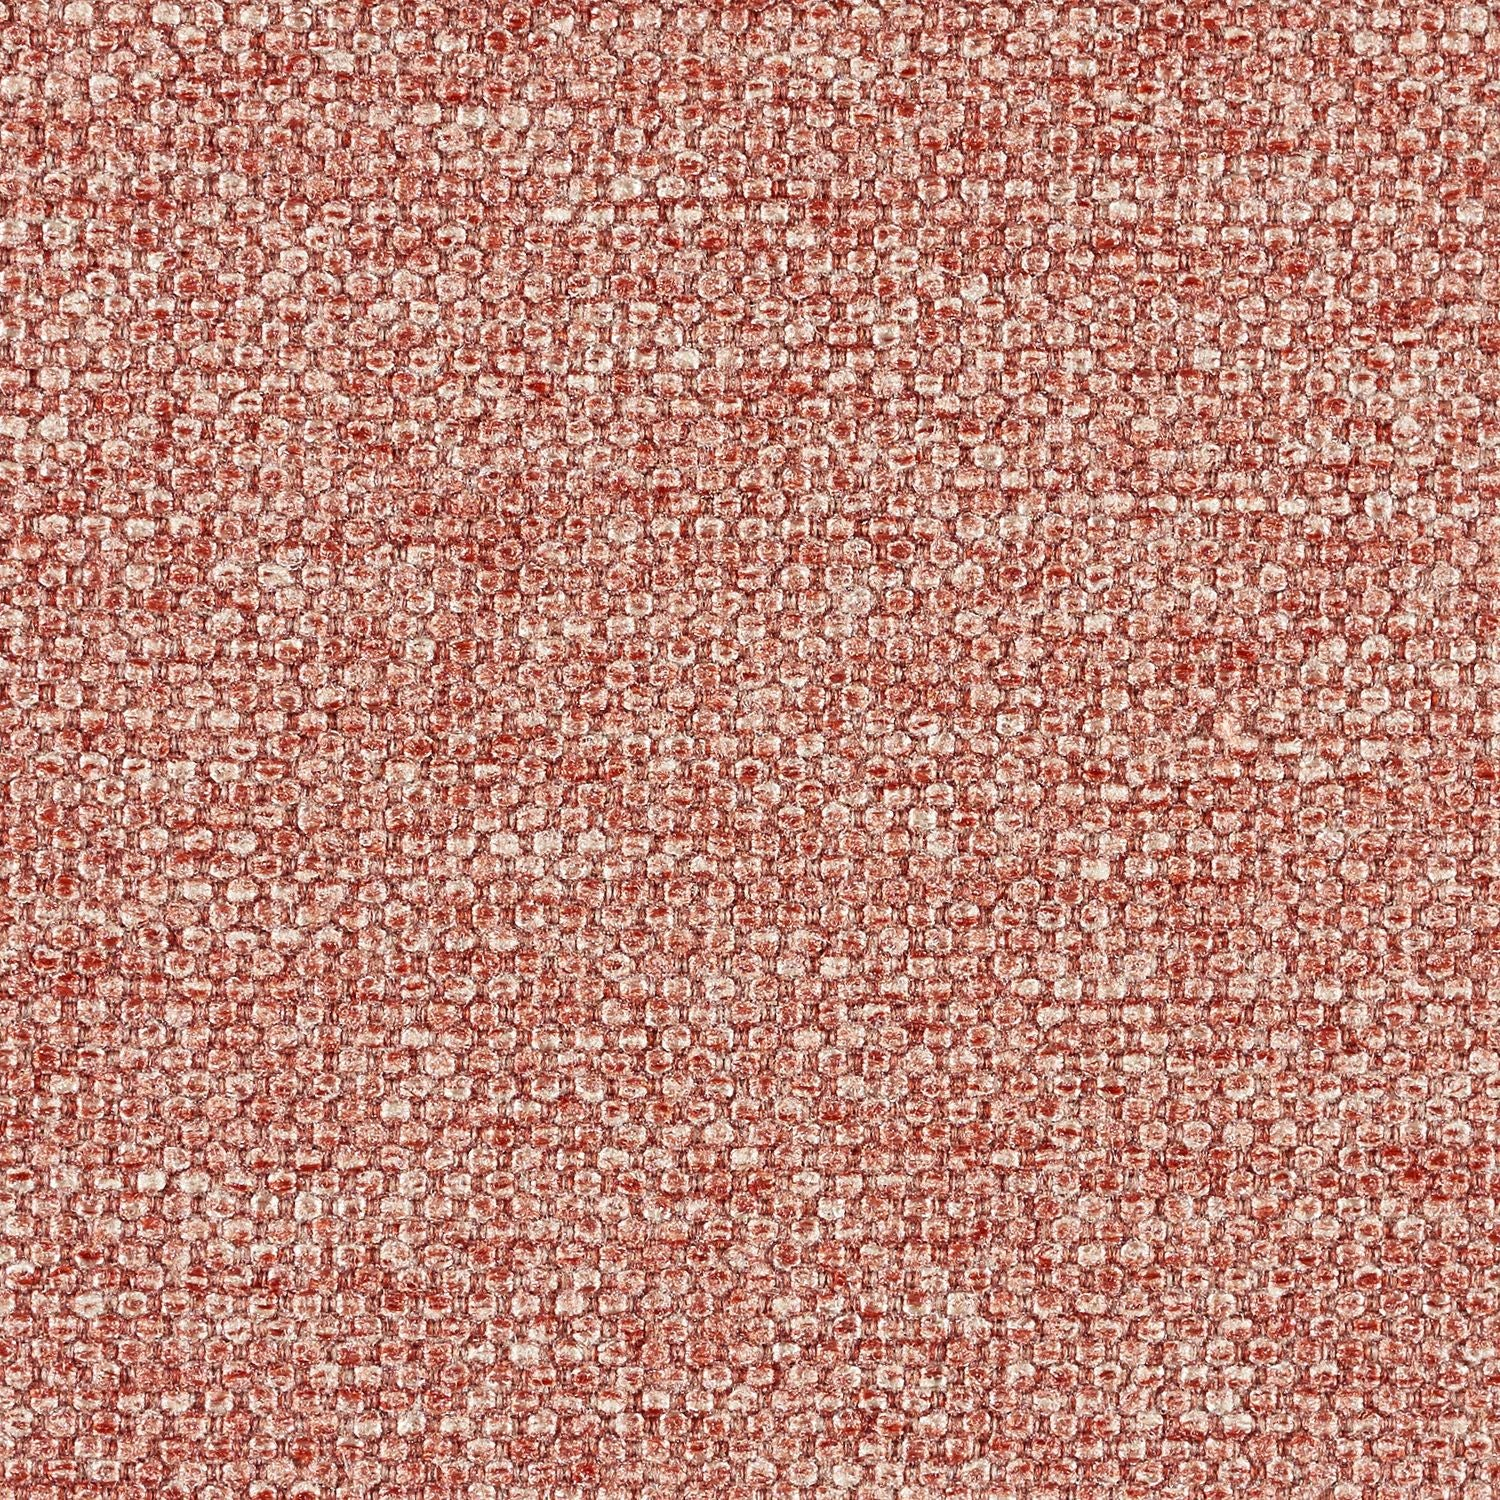 Digi Tweed - Rose Tweed - 4058 - 13